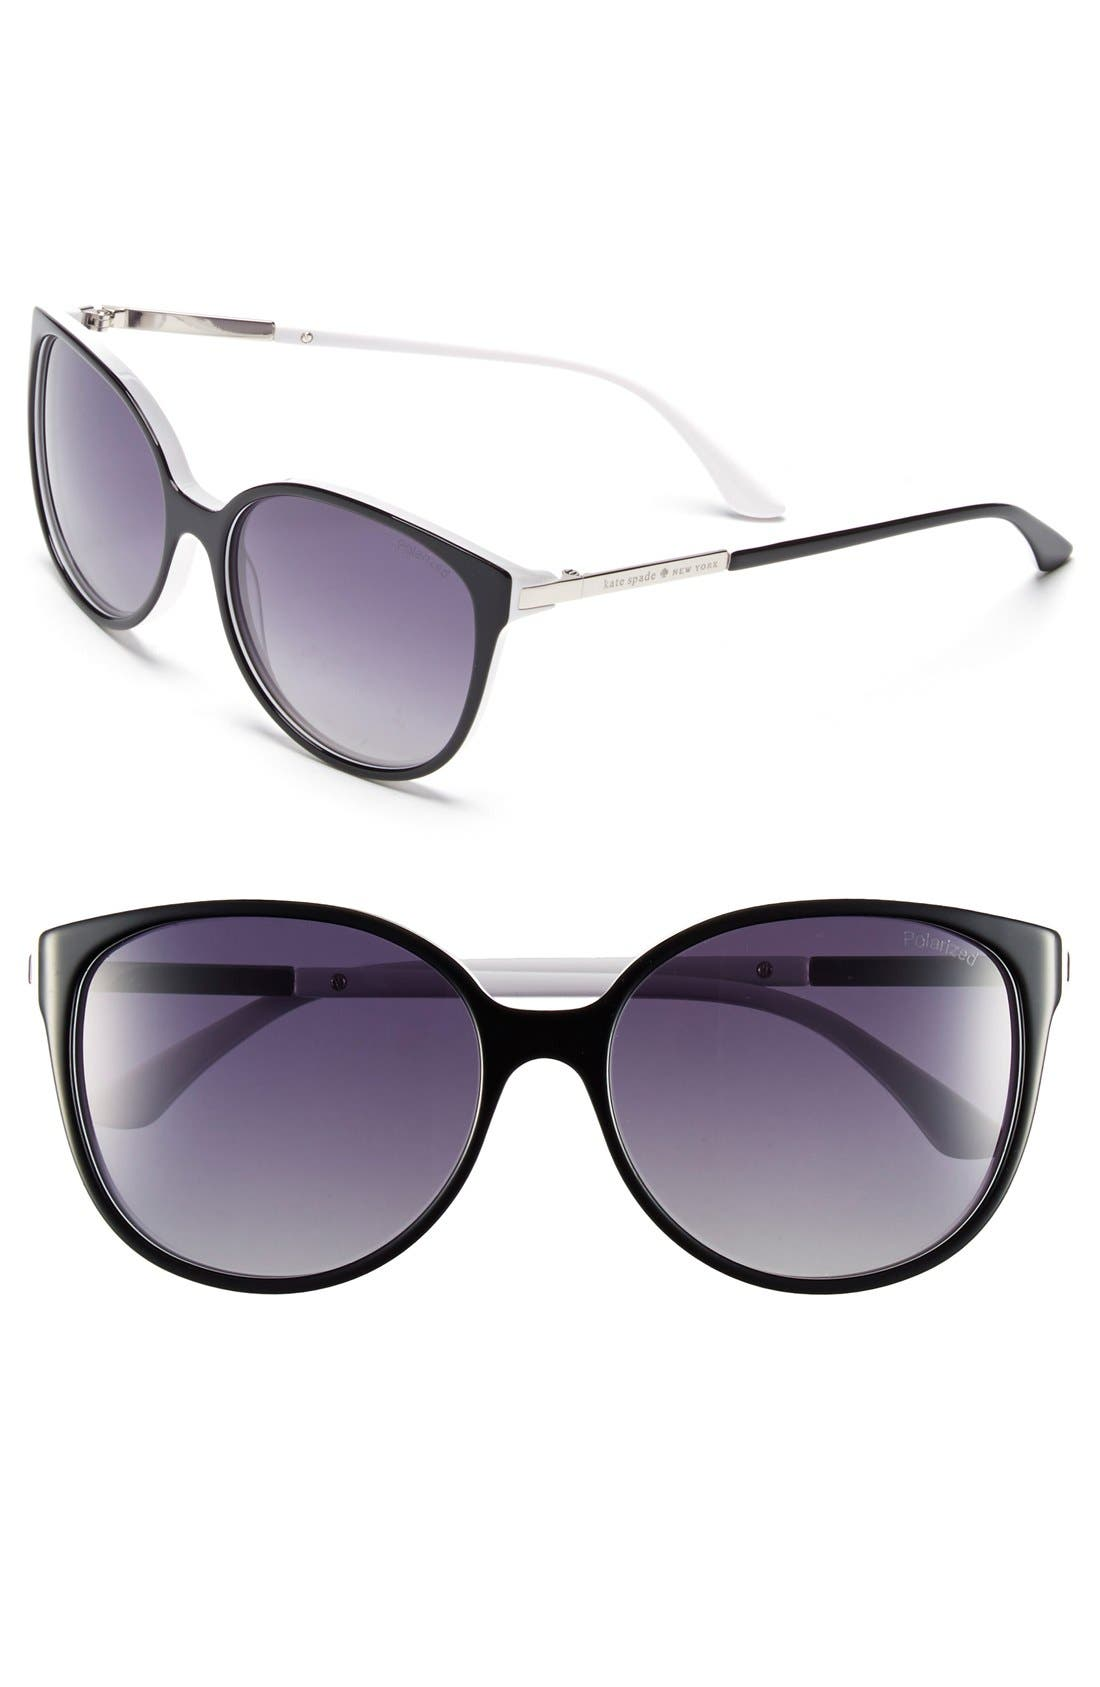 Main Image - kate spade new york 'shawna' 56mm polarized sunglasses (Nordstrom Exclusive)